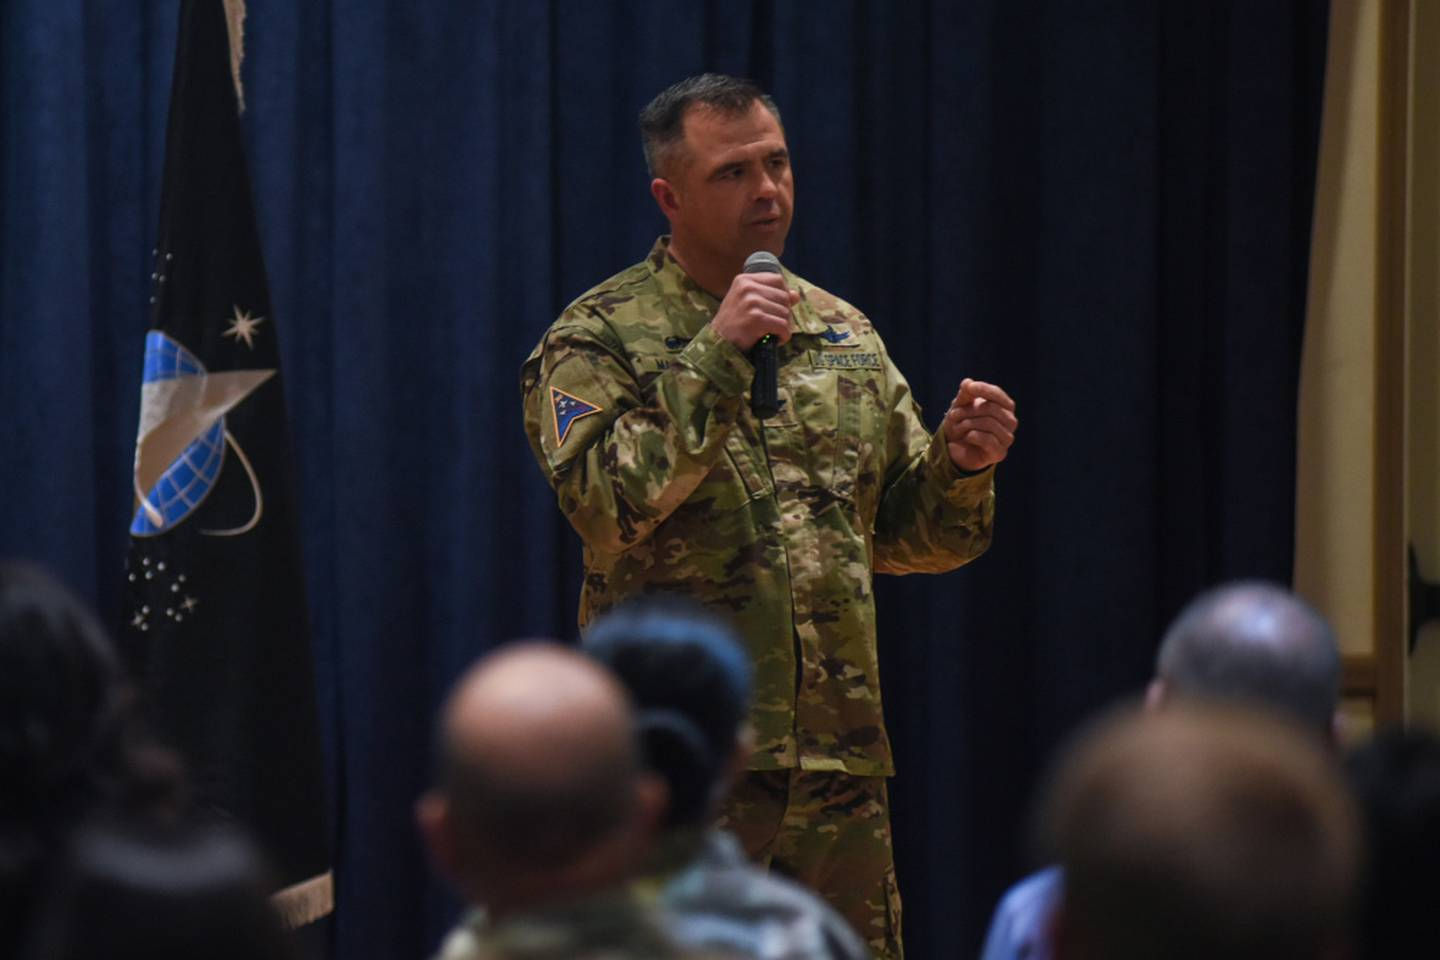 Col. Anthony Mastalir, Space Launch Delta 30 commander, provides information on the U.S. Space Force and changes in the SLD 30 structure during a commander's all call May 25, 2021, at Vandenberg Space Force Base, Calif. (Michael Peterson/Space Force)